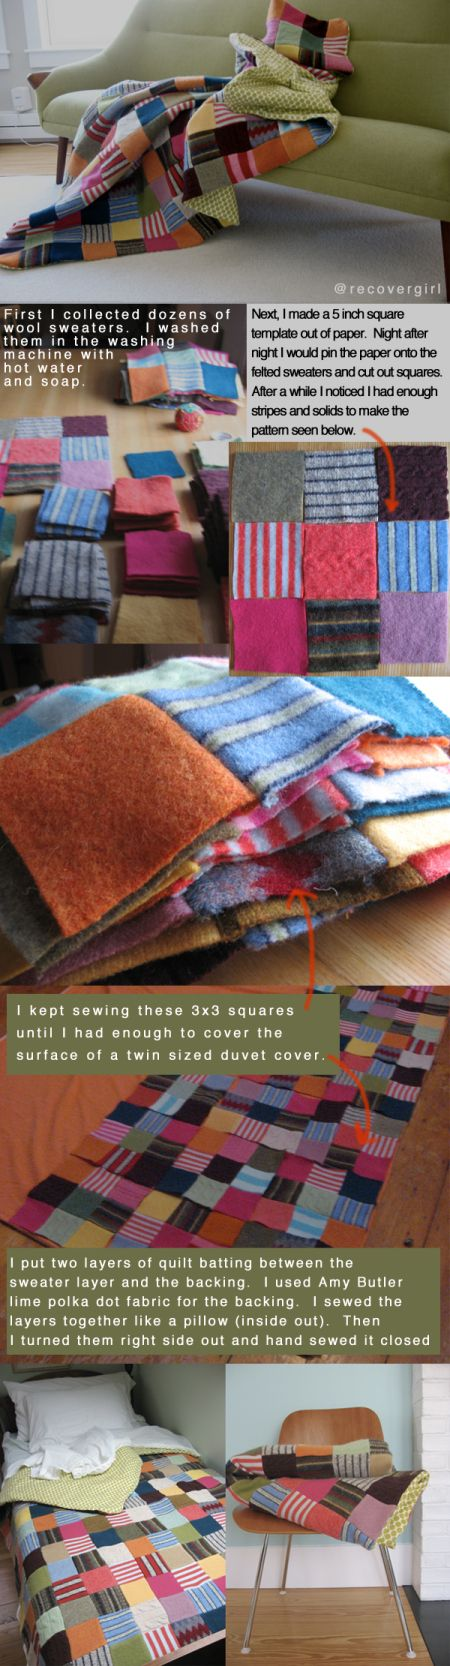 recovergirl-sweater-blanket-how-to Tutorial...now this is how quilts should be made! bet it is really warm!